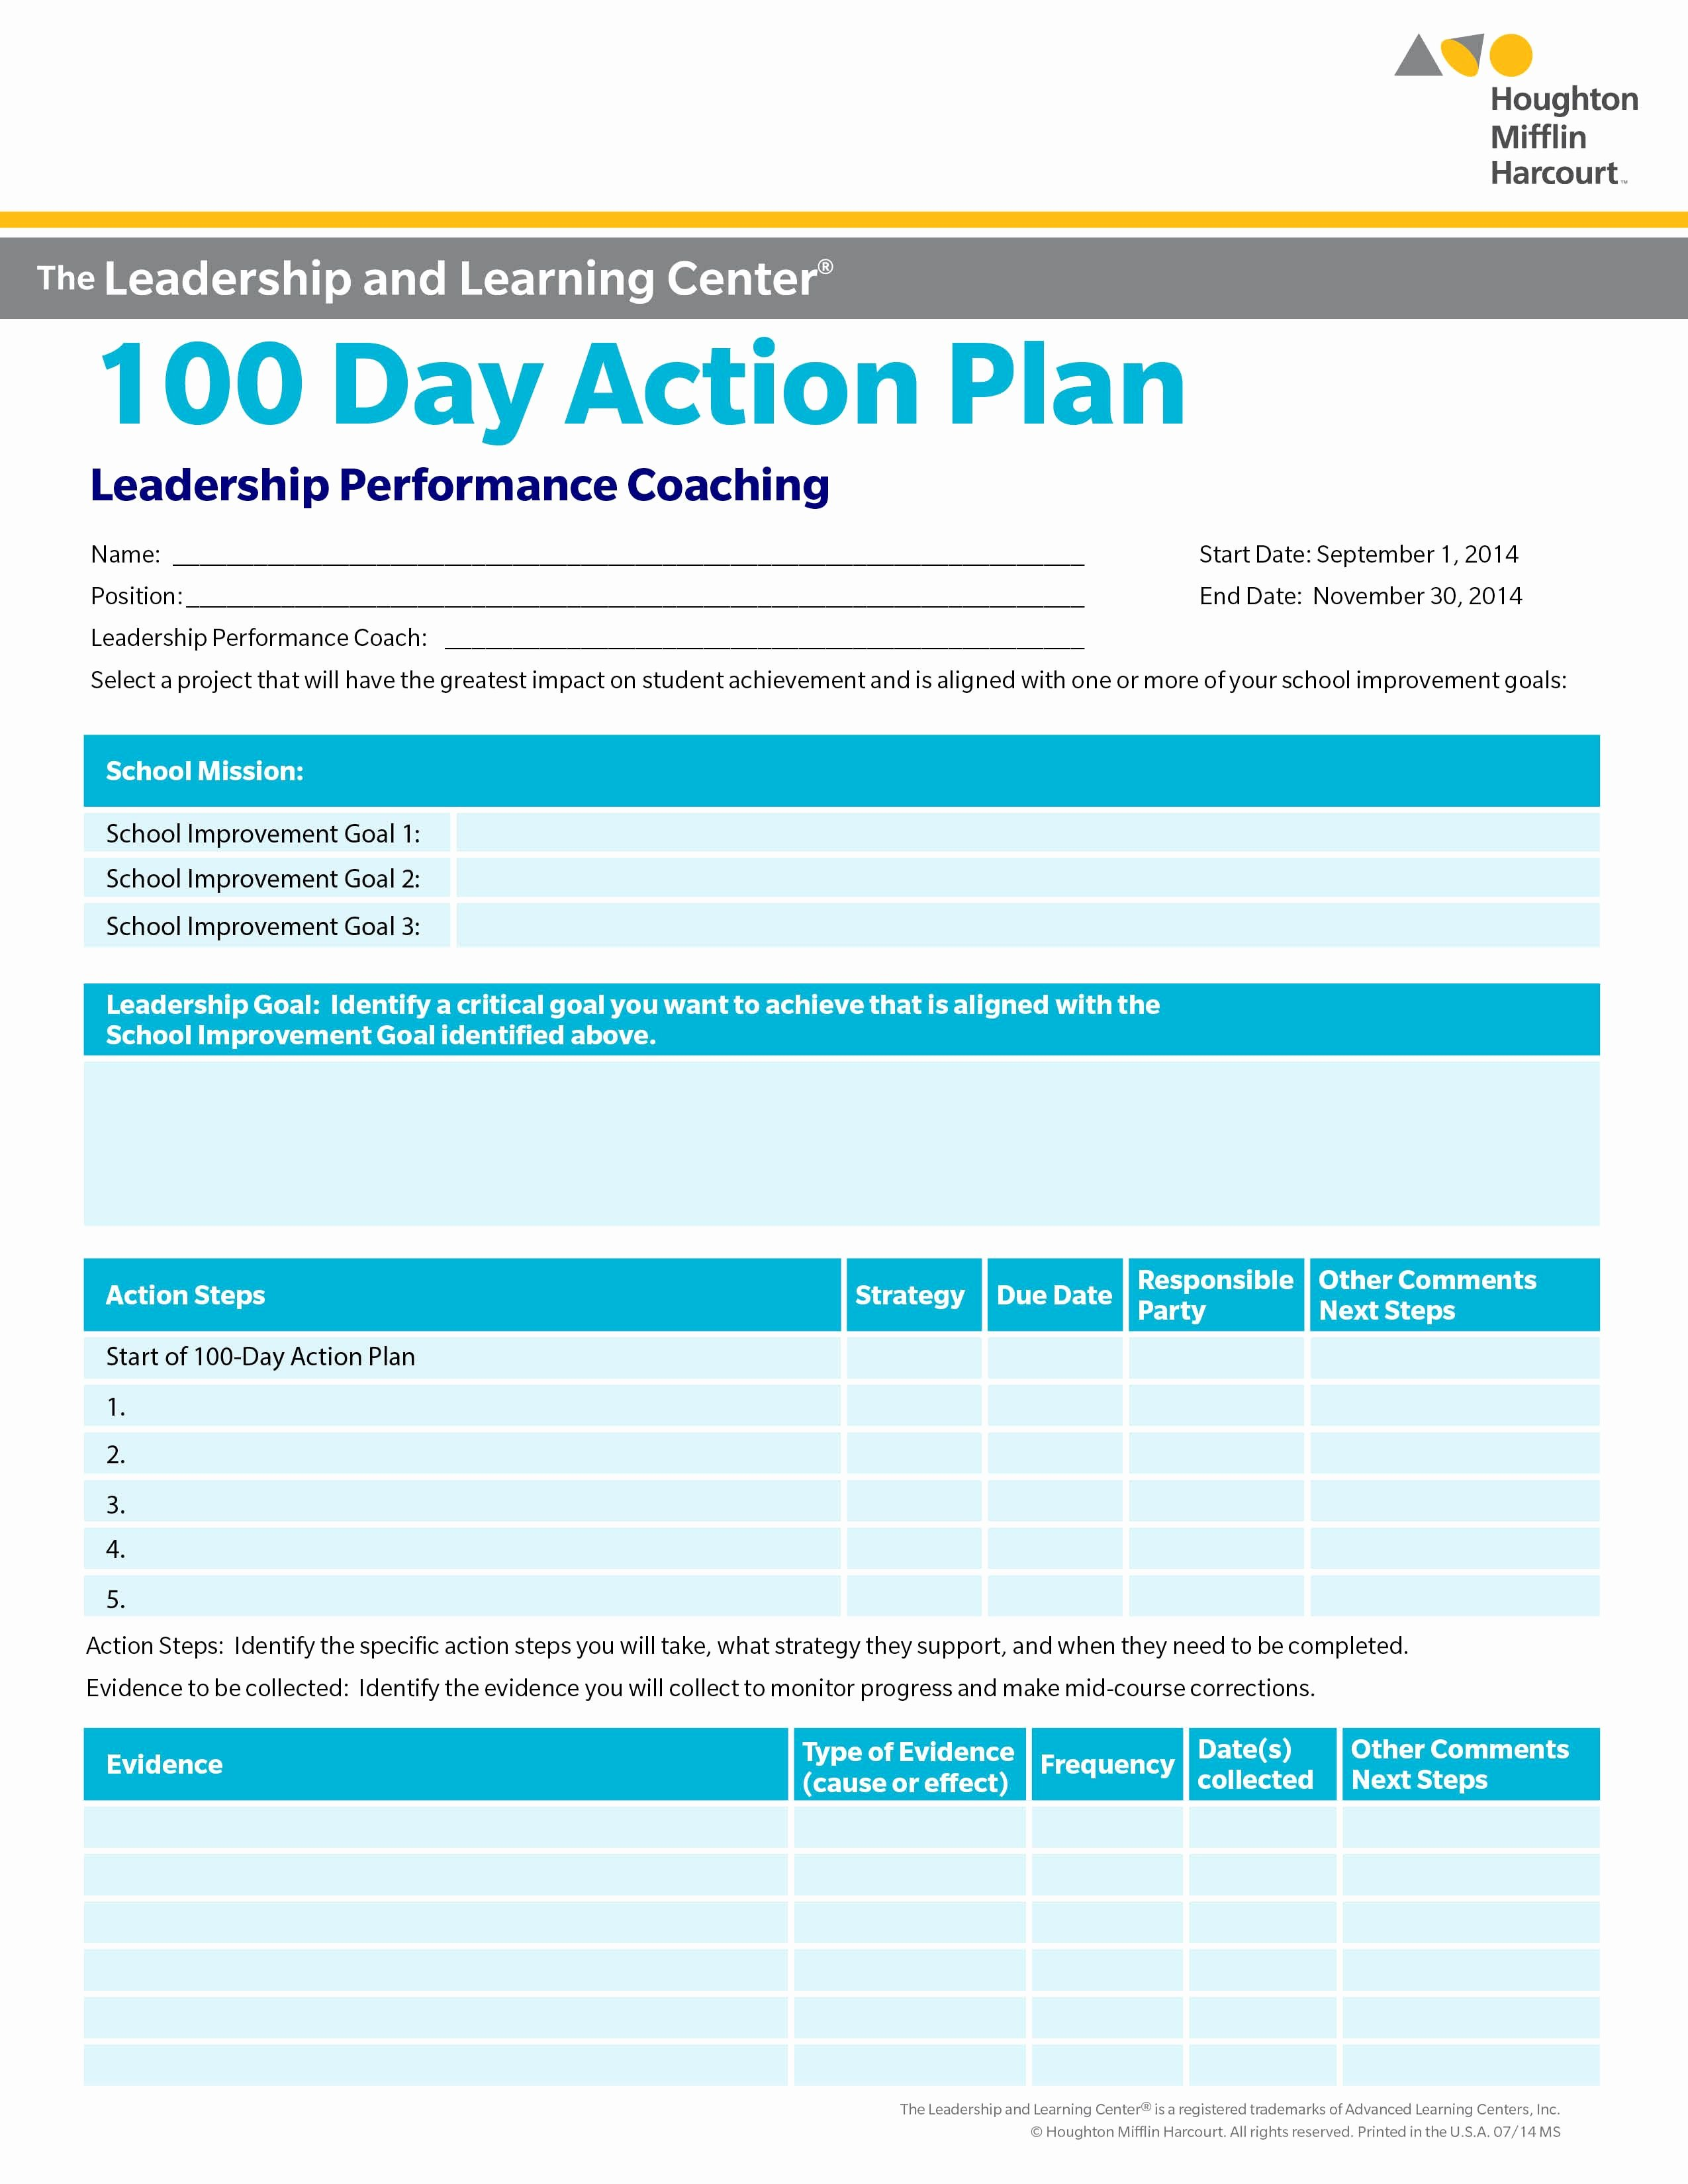 100 Day Plan Template Lovely School Improvement 100 Day Action Plan Select A Goal for